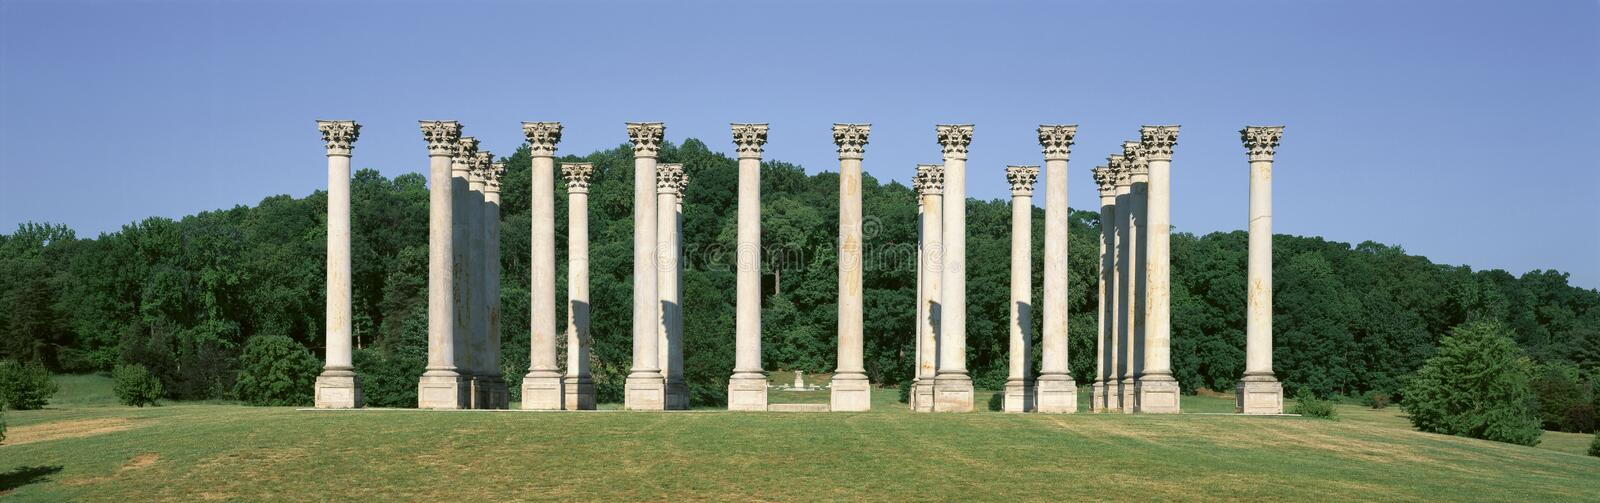 Download The first Capitol Columns stock photo. Image of column - 26893952